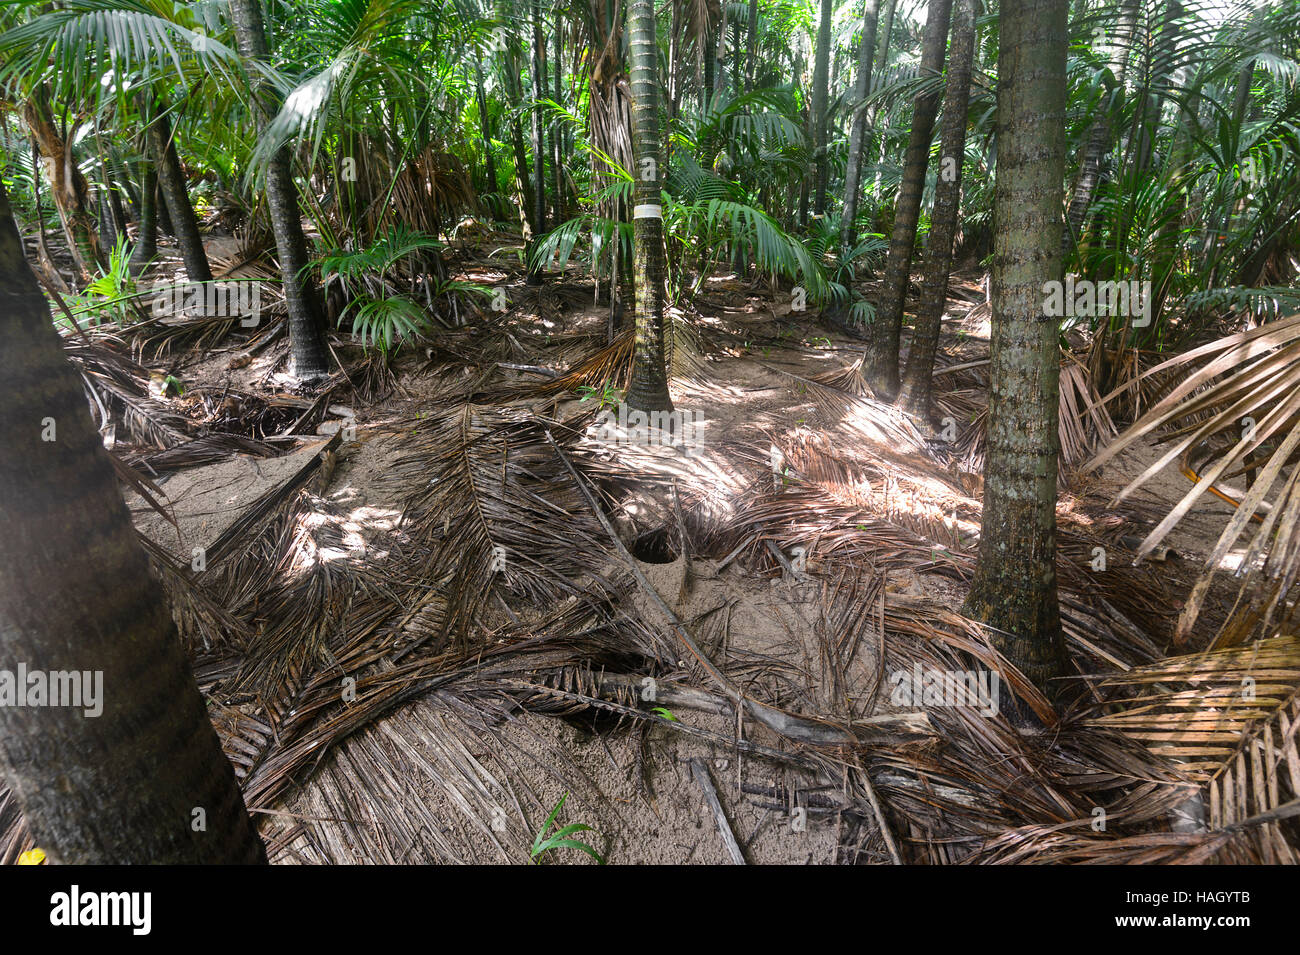 Burrows of Flesh-footed Shearwaters (Puffinus carneipes) or Muttonbirds in the Kentia Palms (Howea forsteriana) Stock Photo